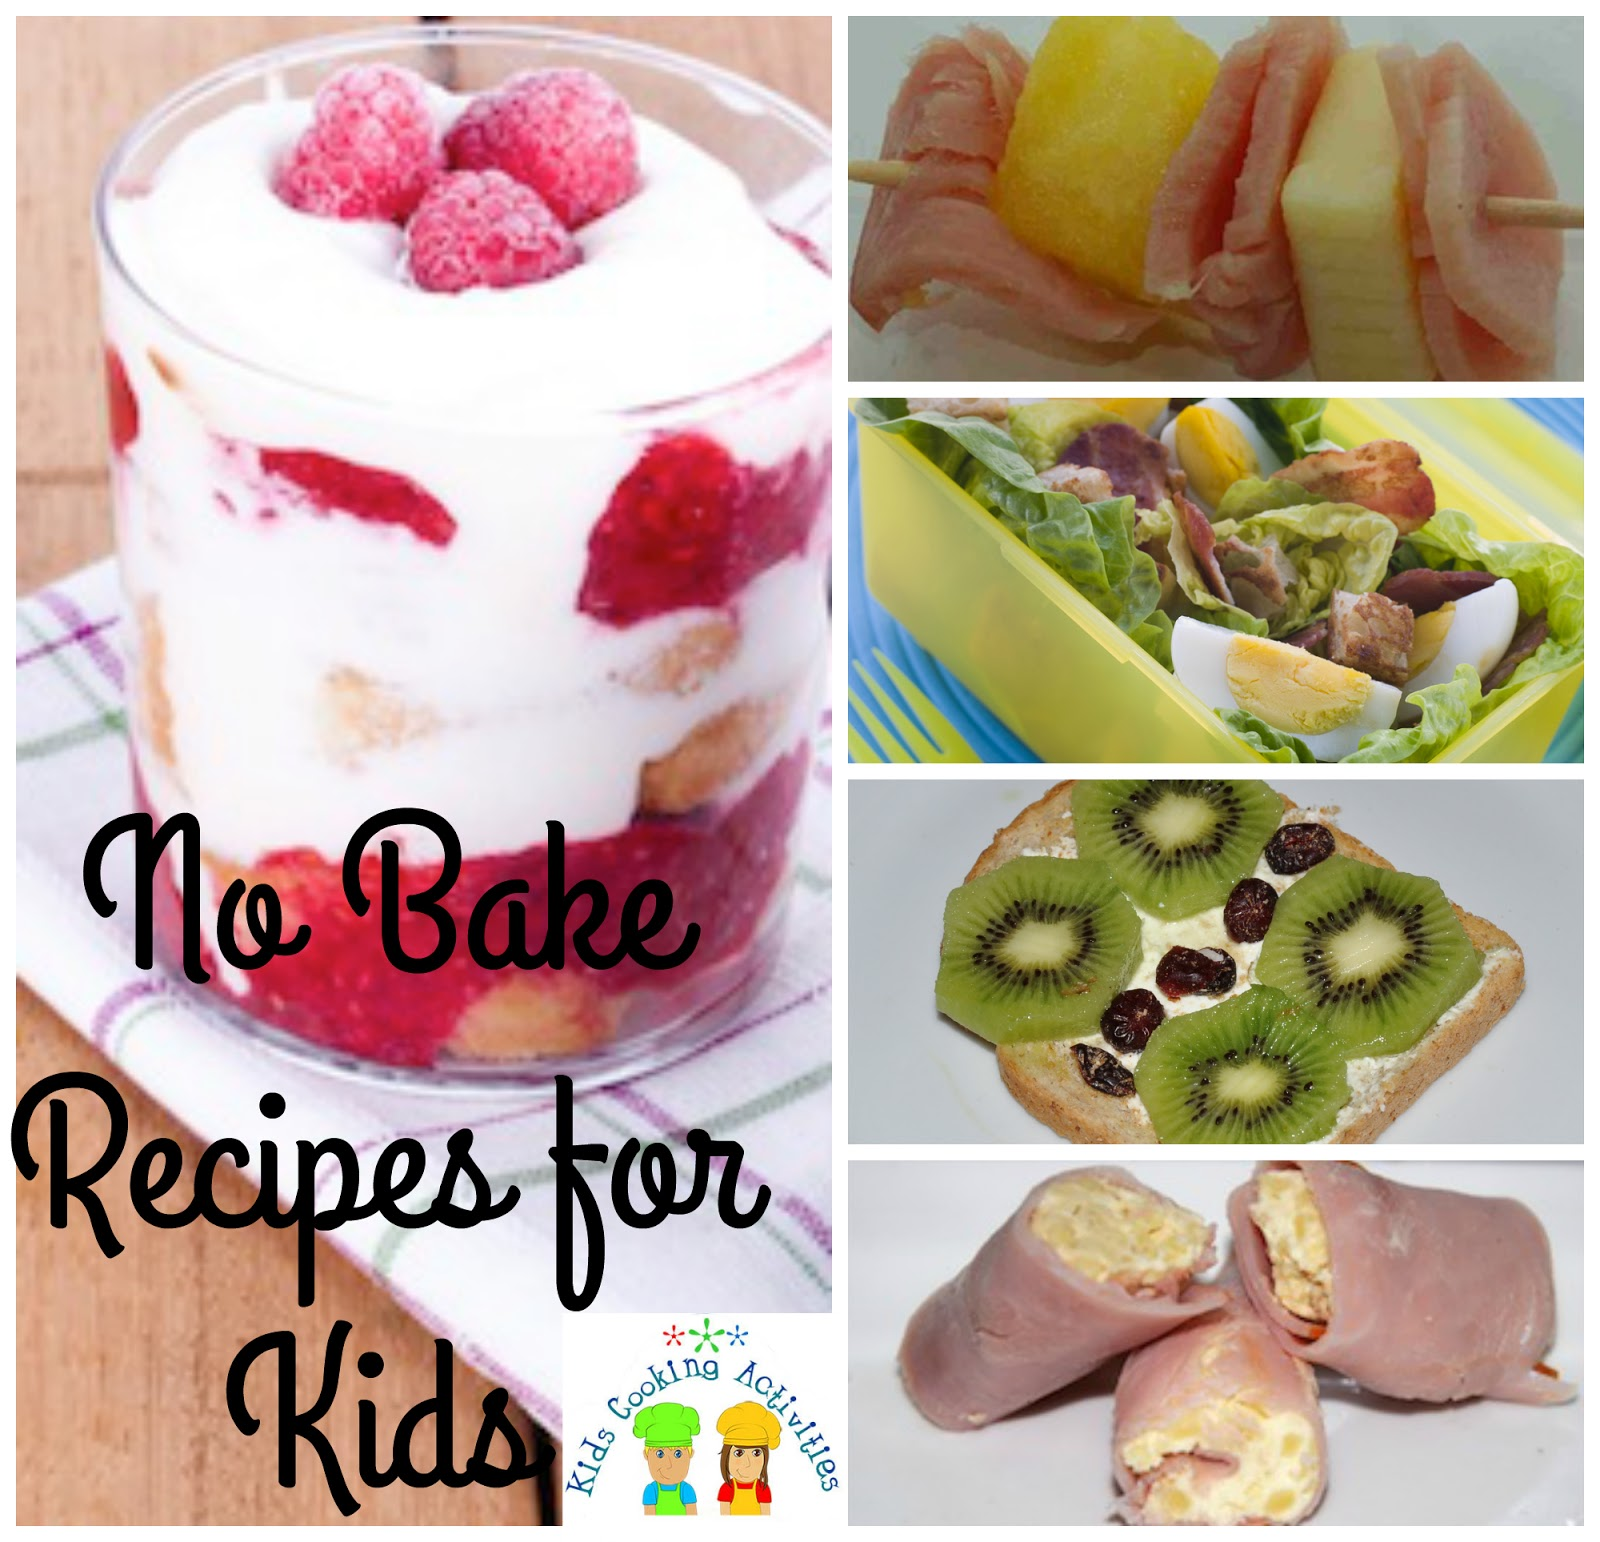 Kitchen Recipes: No Bake Recipes For Kids